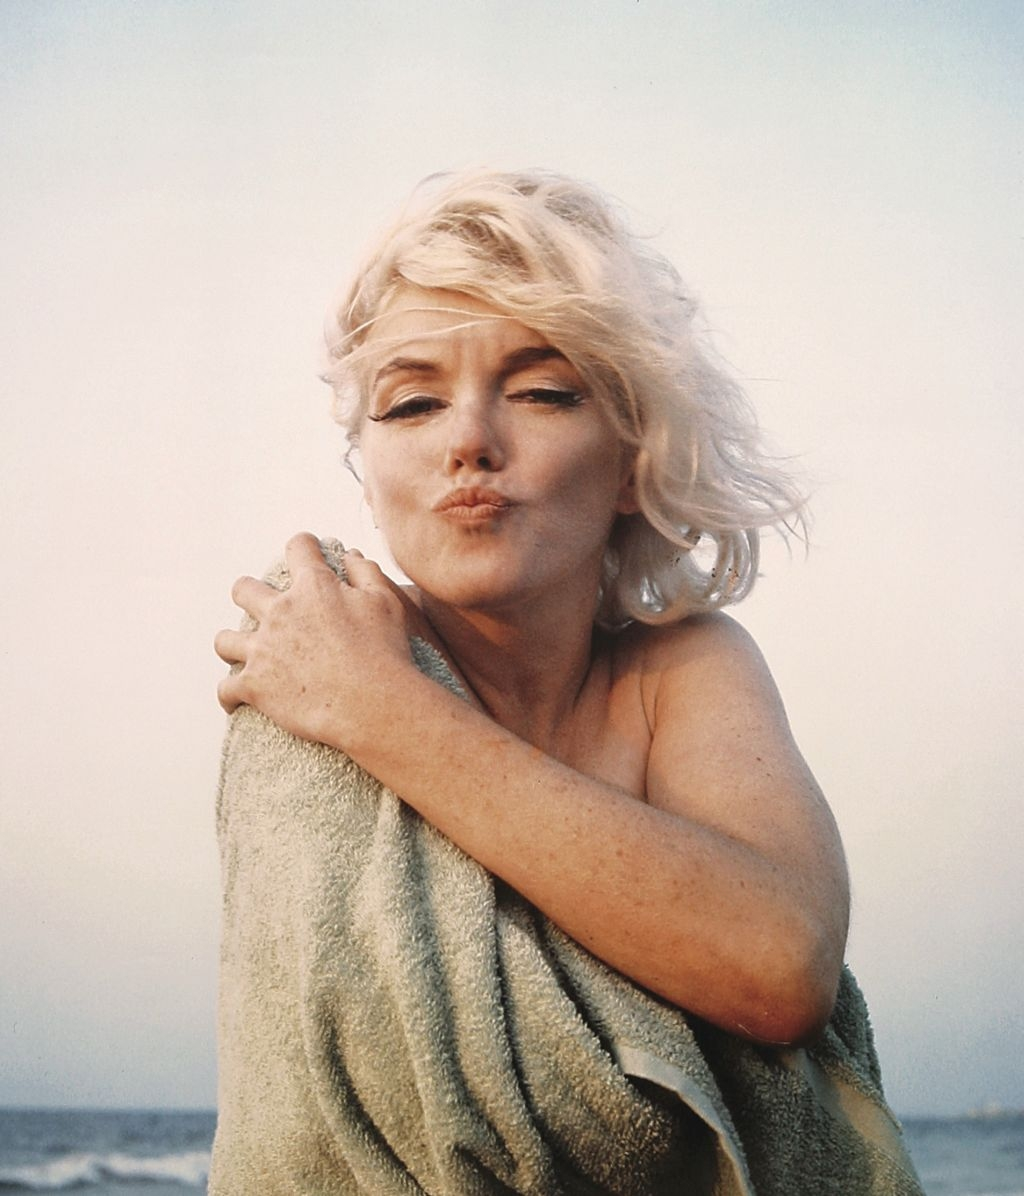 A woman knows, by intuition or instinct, what is best for herself.  - Marilyn Monroe